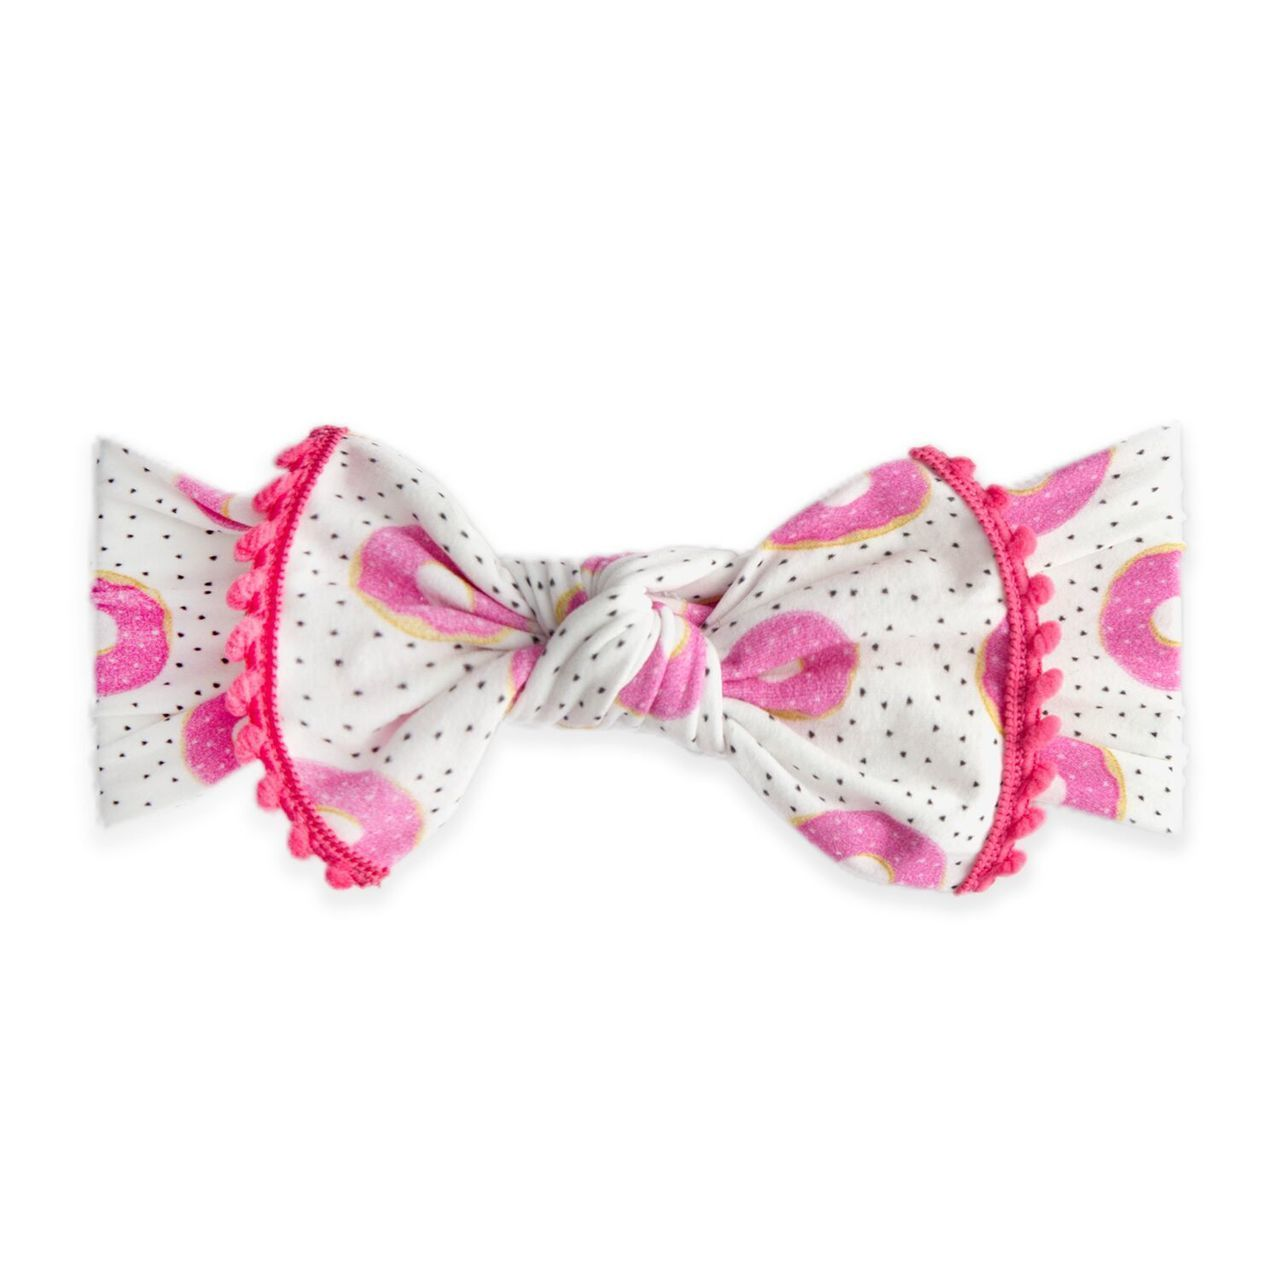 Trimmed Knot Bow Donuts Spearmint Ventures Llc Baby Bling Baby Bling Bows Bows